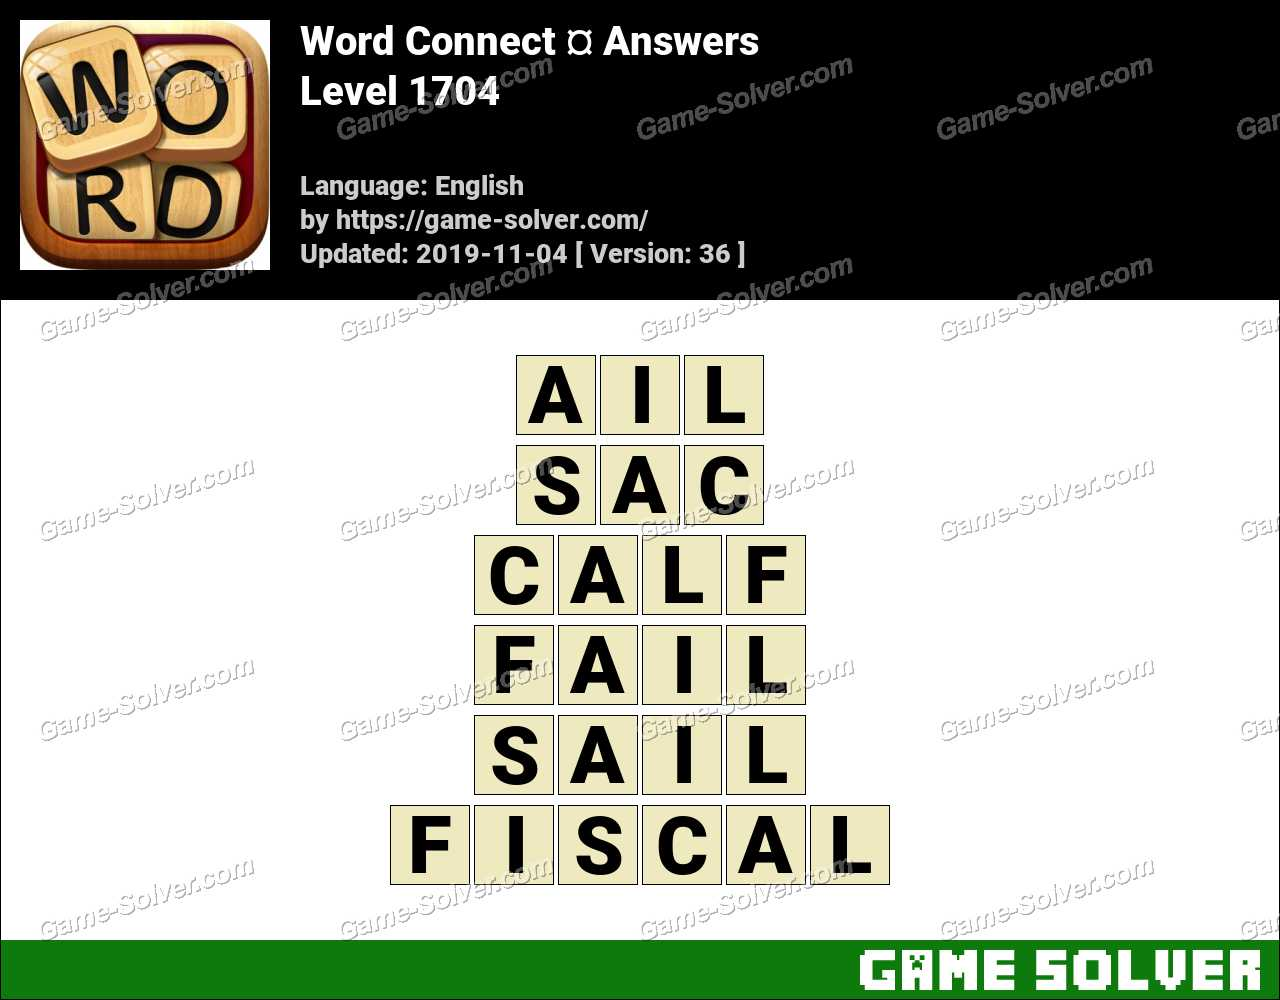 Word Connect Level 1704 Answers